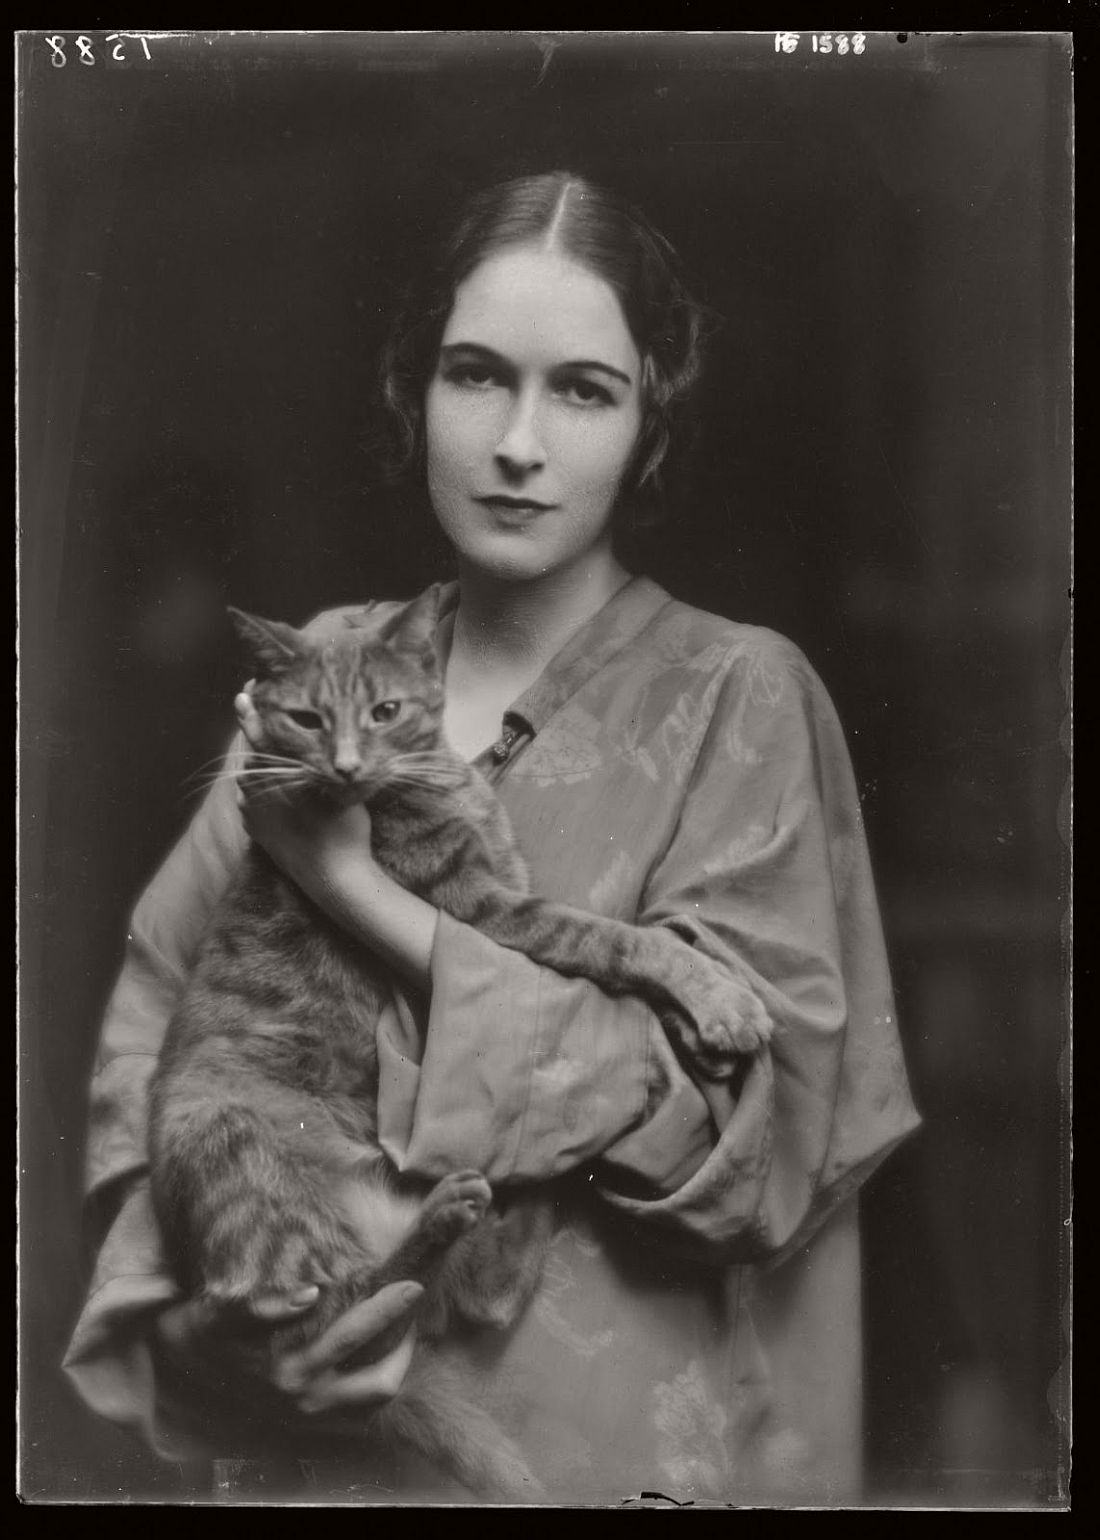 arnold-genthe-1910s-vintage-studio-portraits-of-girls-with-cat-20